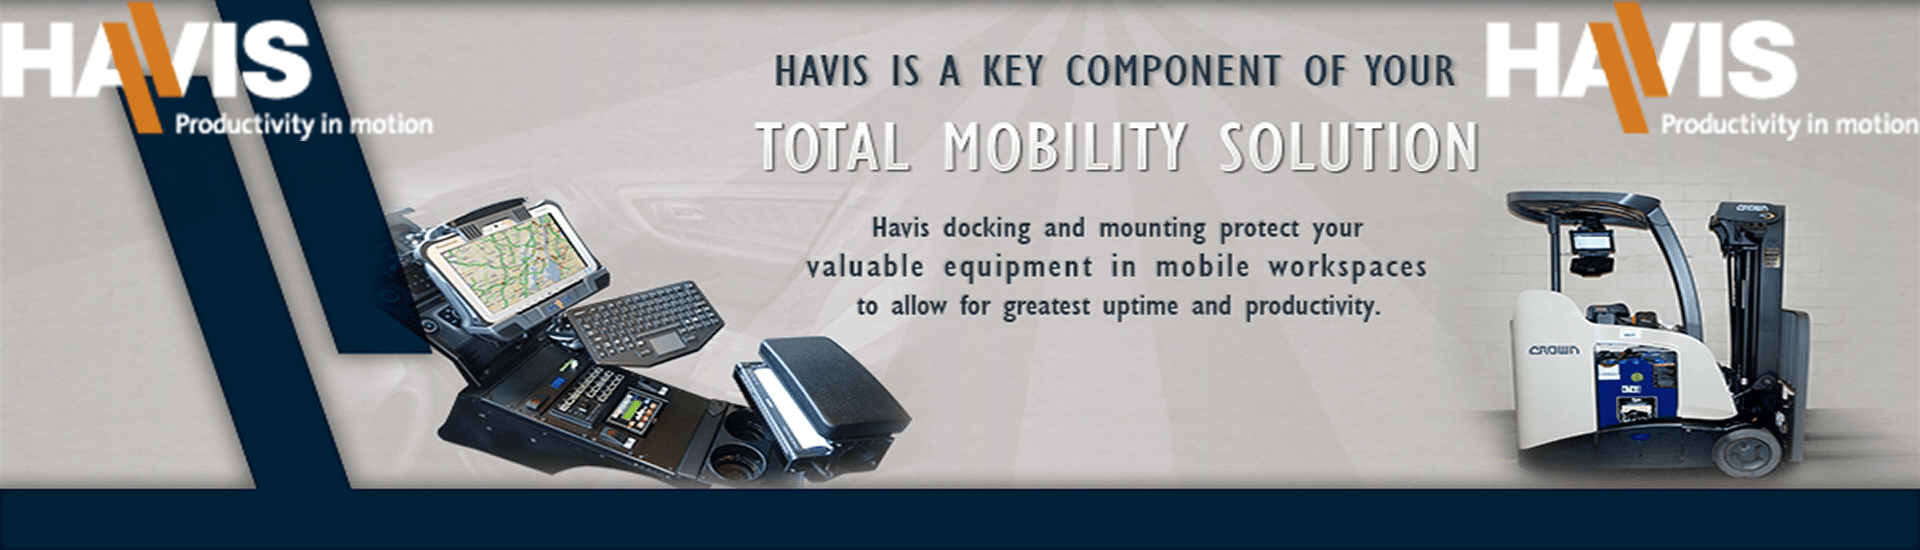 Havis Mounts and Docks